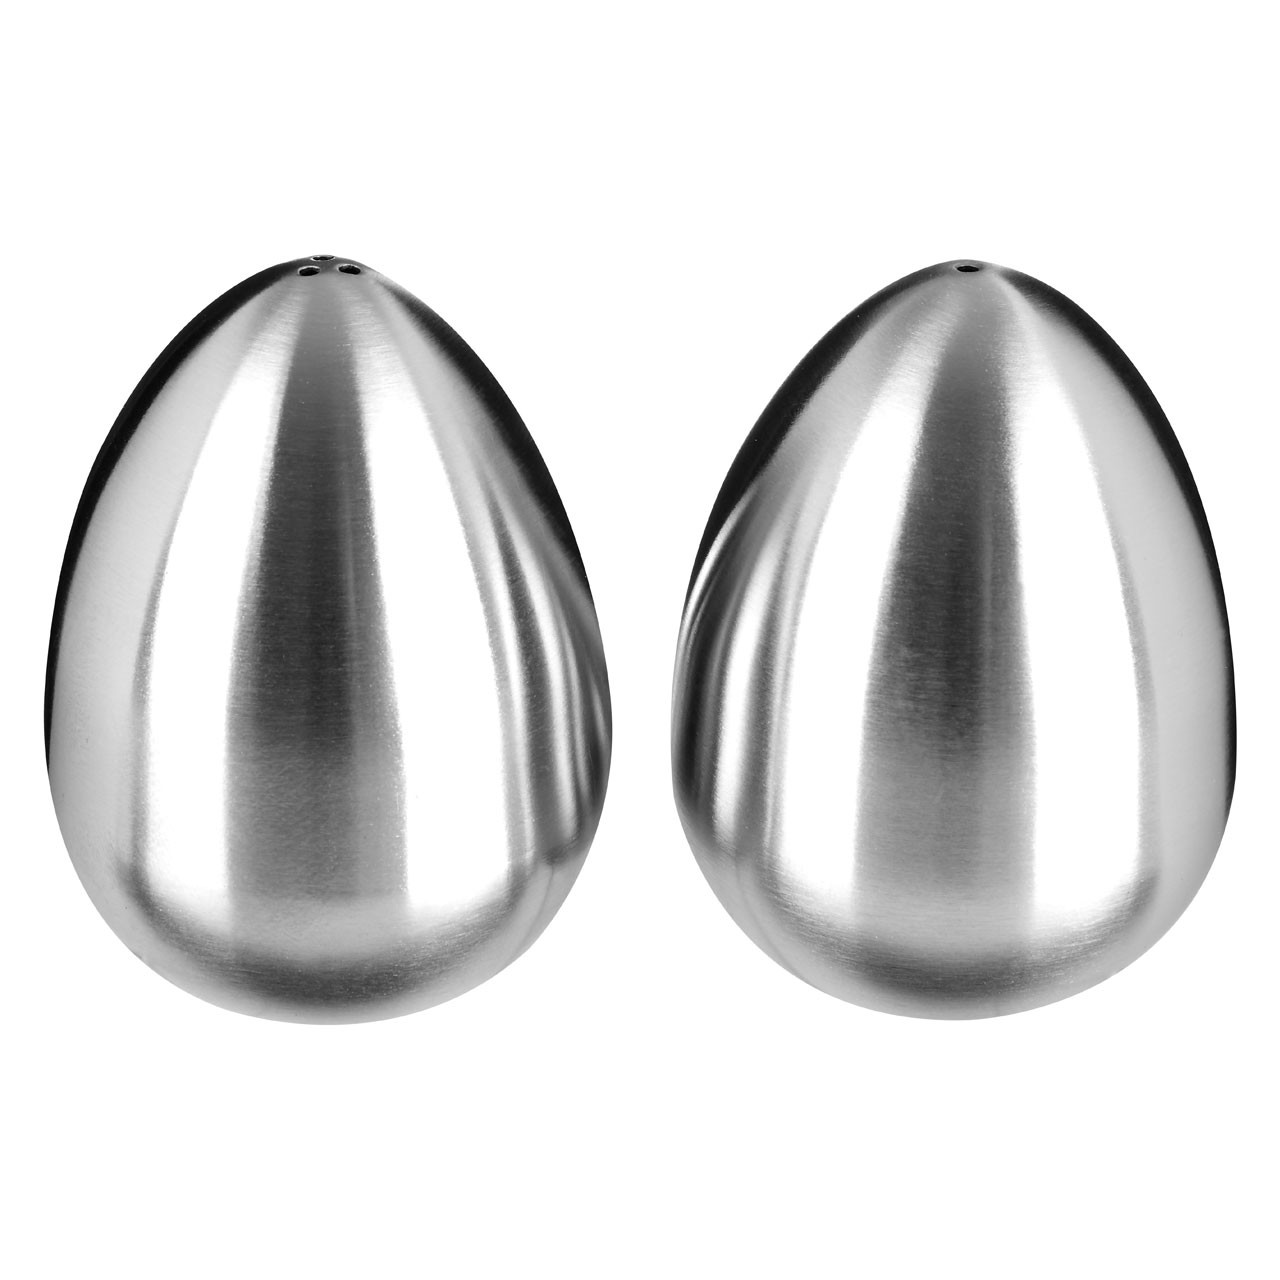 Egg Shaped Salt and Pepper Set, Stainless Steel